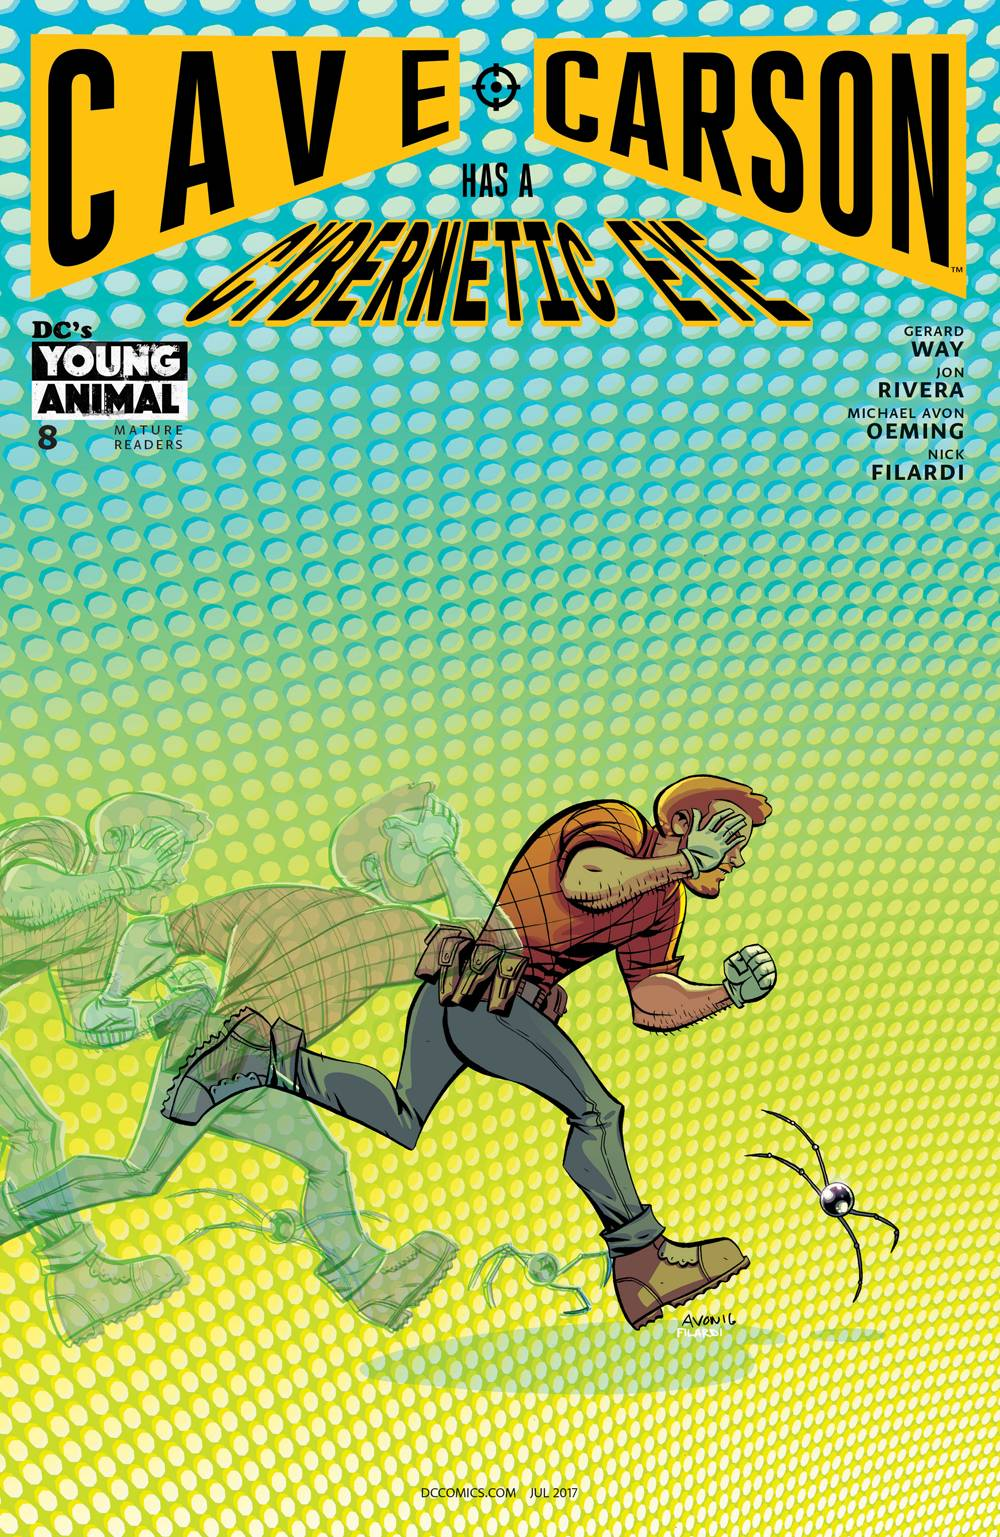 CAVE CARSON HAS A CYBERNETIC EYE 8.jpg